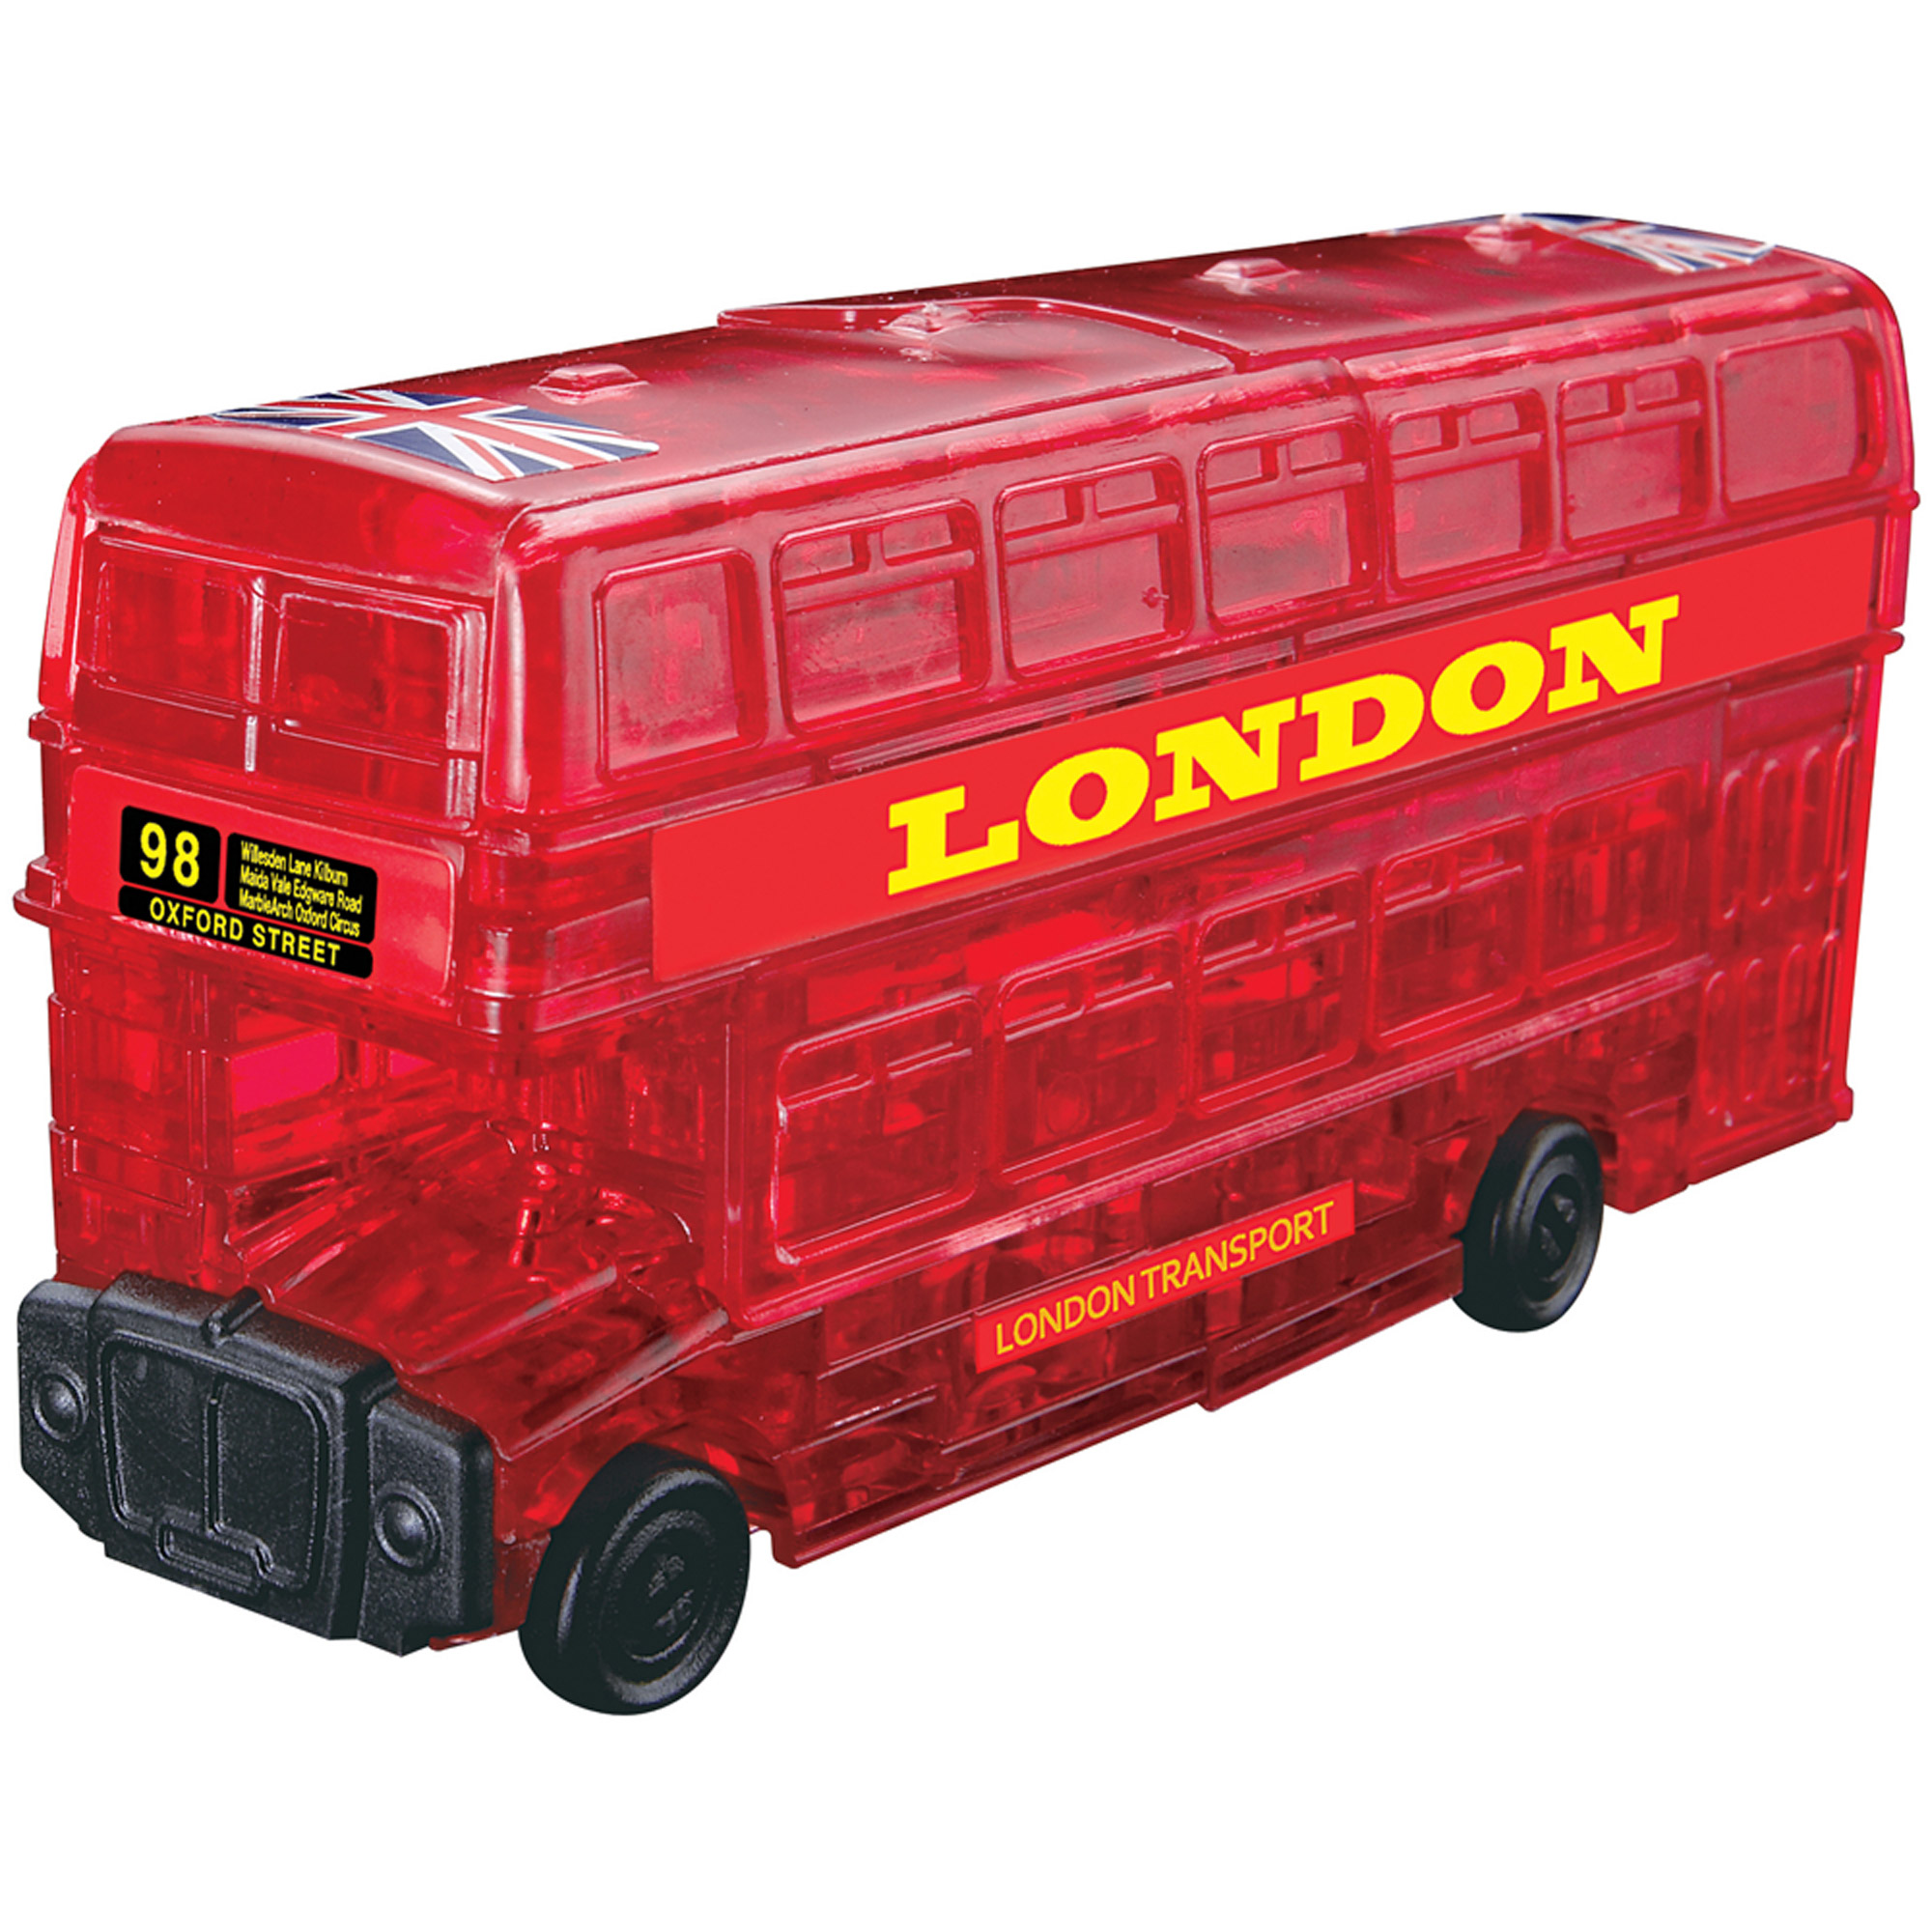 3D Crystal Puzzle Red London Bus Puzzle, 53 Pieces